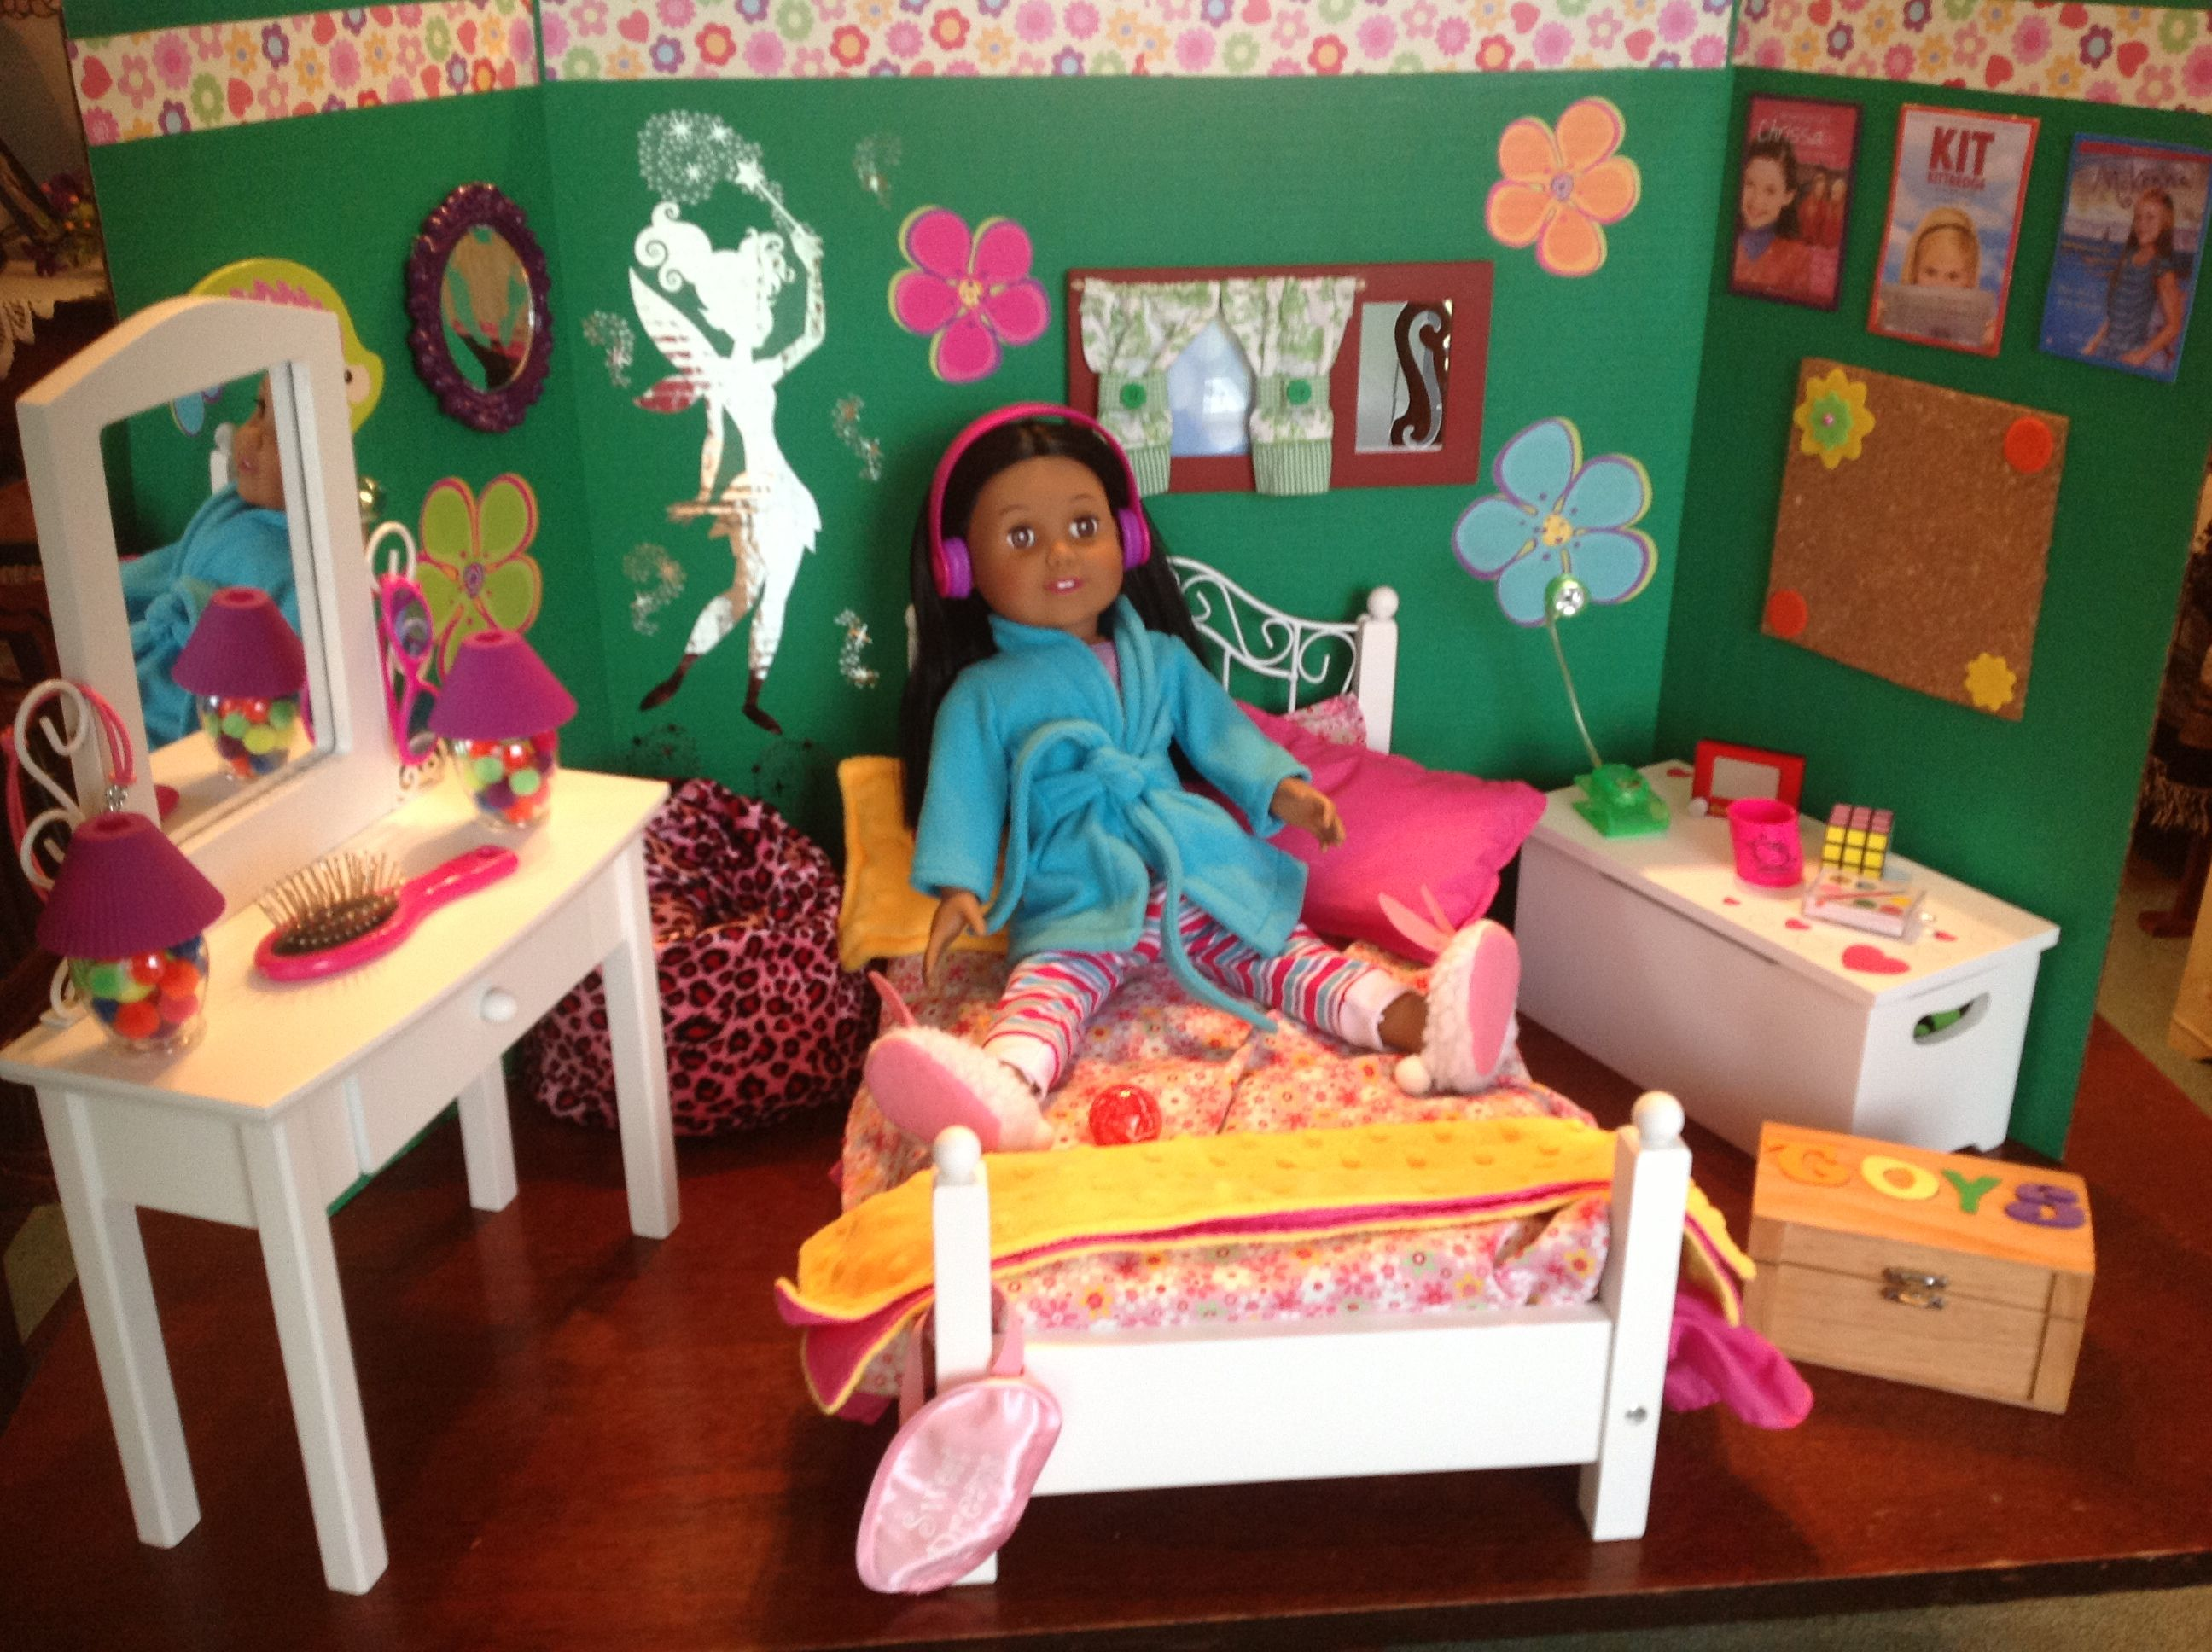 Scrapbook paper dollhouse wallpaper - American Girl Dollhouse A Three Fold Science Display Project Board Decorated With Stickers